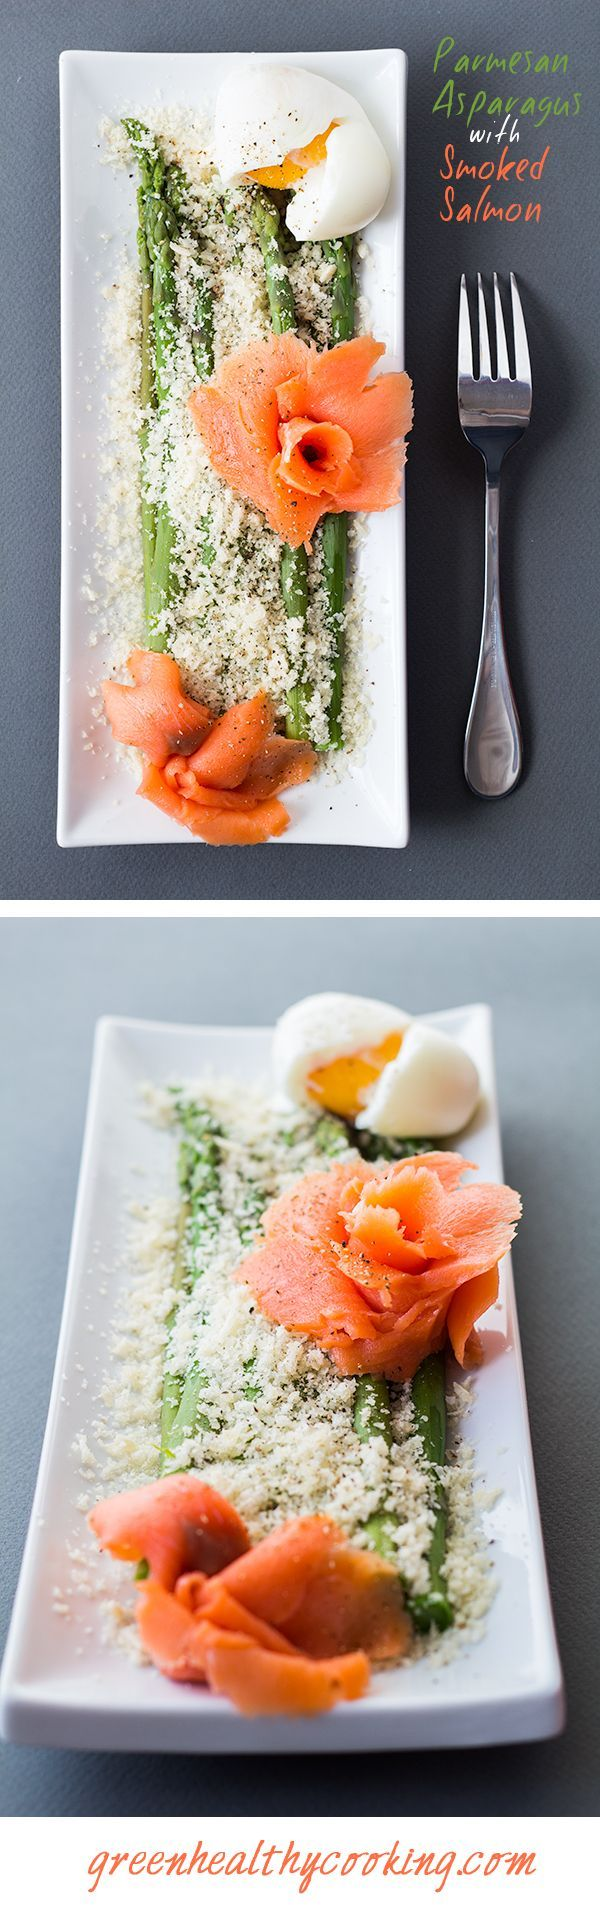 Need a super quick and easy lunch? 15 mins and boiling water in a pot quick and easy enough? This Parmesan Asparagus with Smoked Salmon recipe is for YOU!